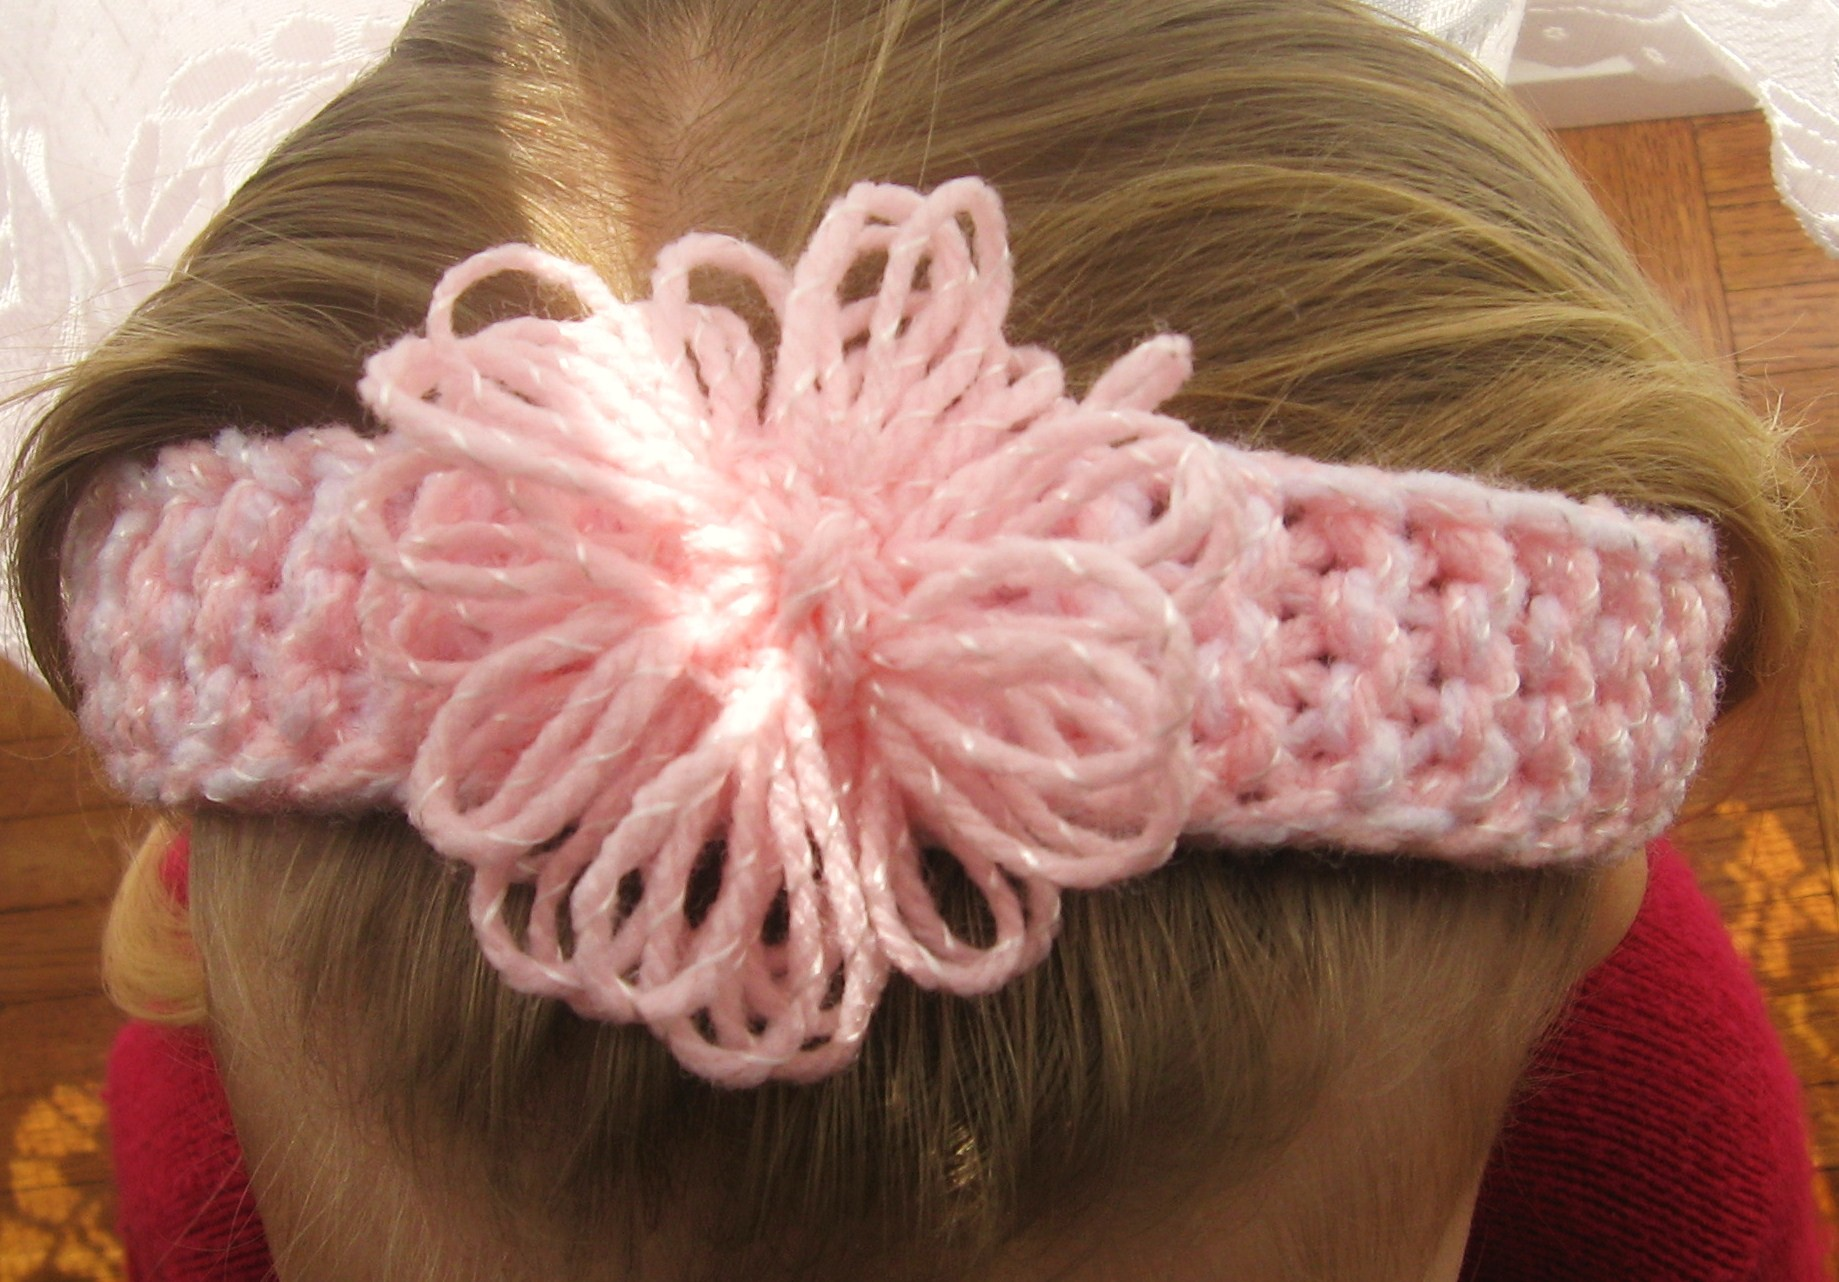 Knitted Headband Patterns With Flower : Loom Knit Headband Patterns A Knitting Blog